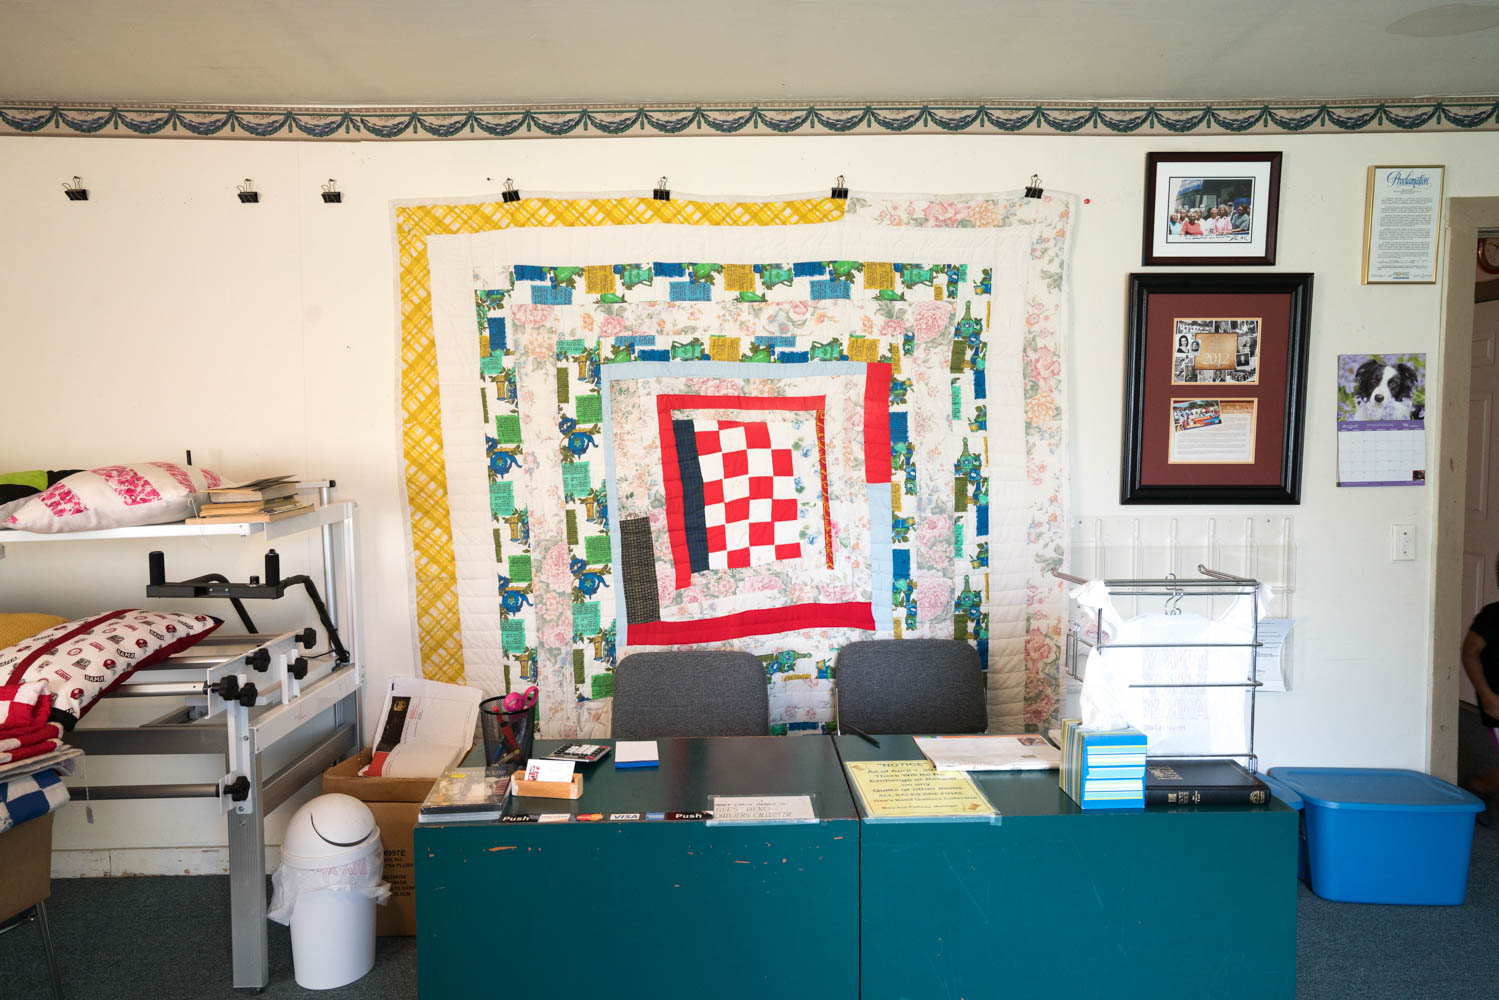 Inside at the Gee's Bend quilt collective